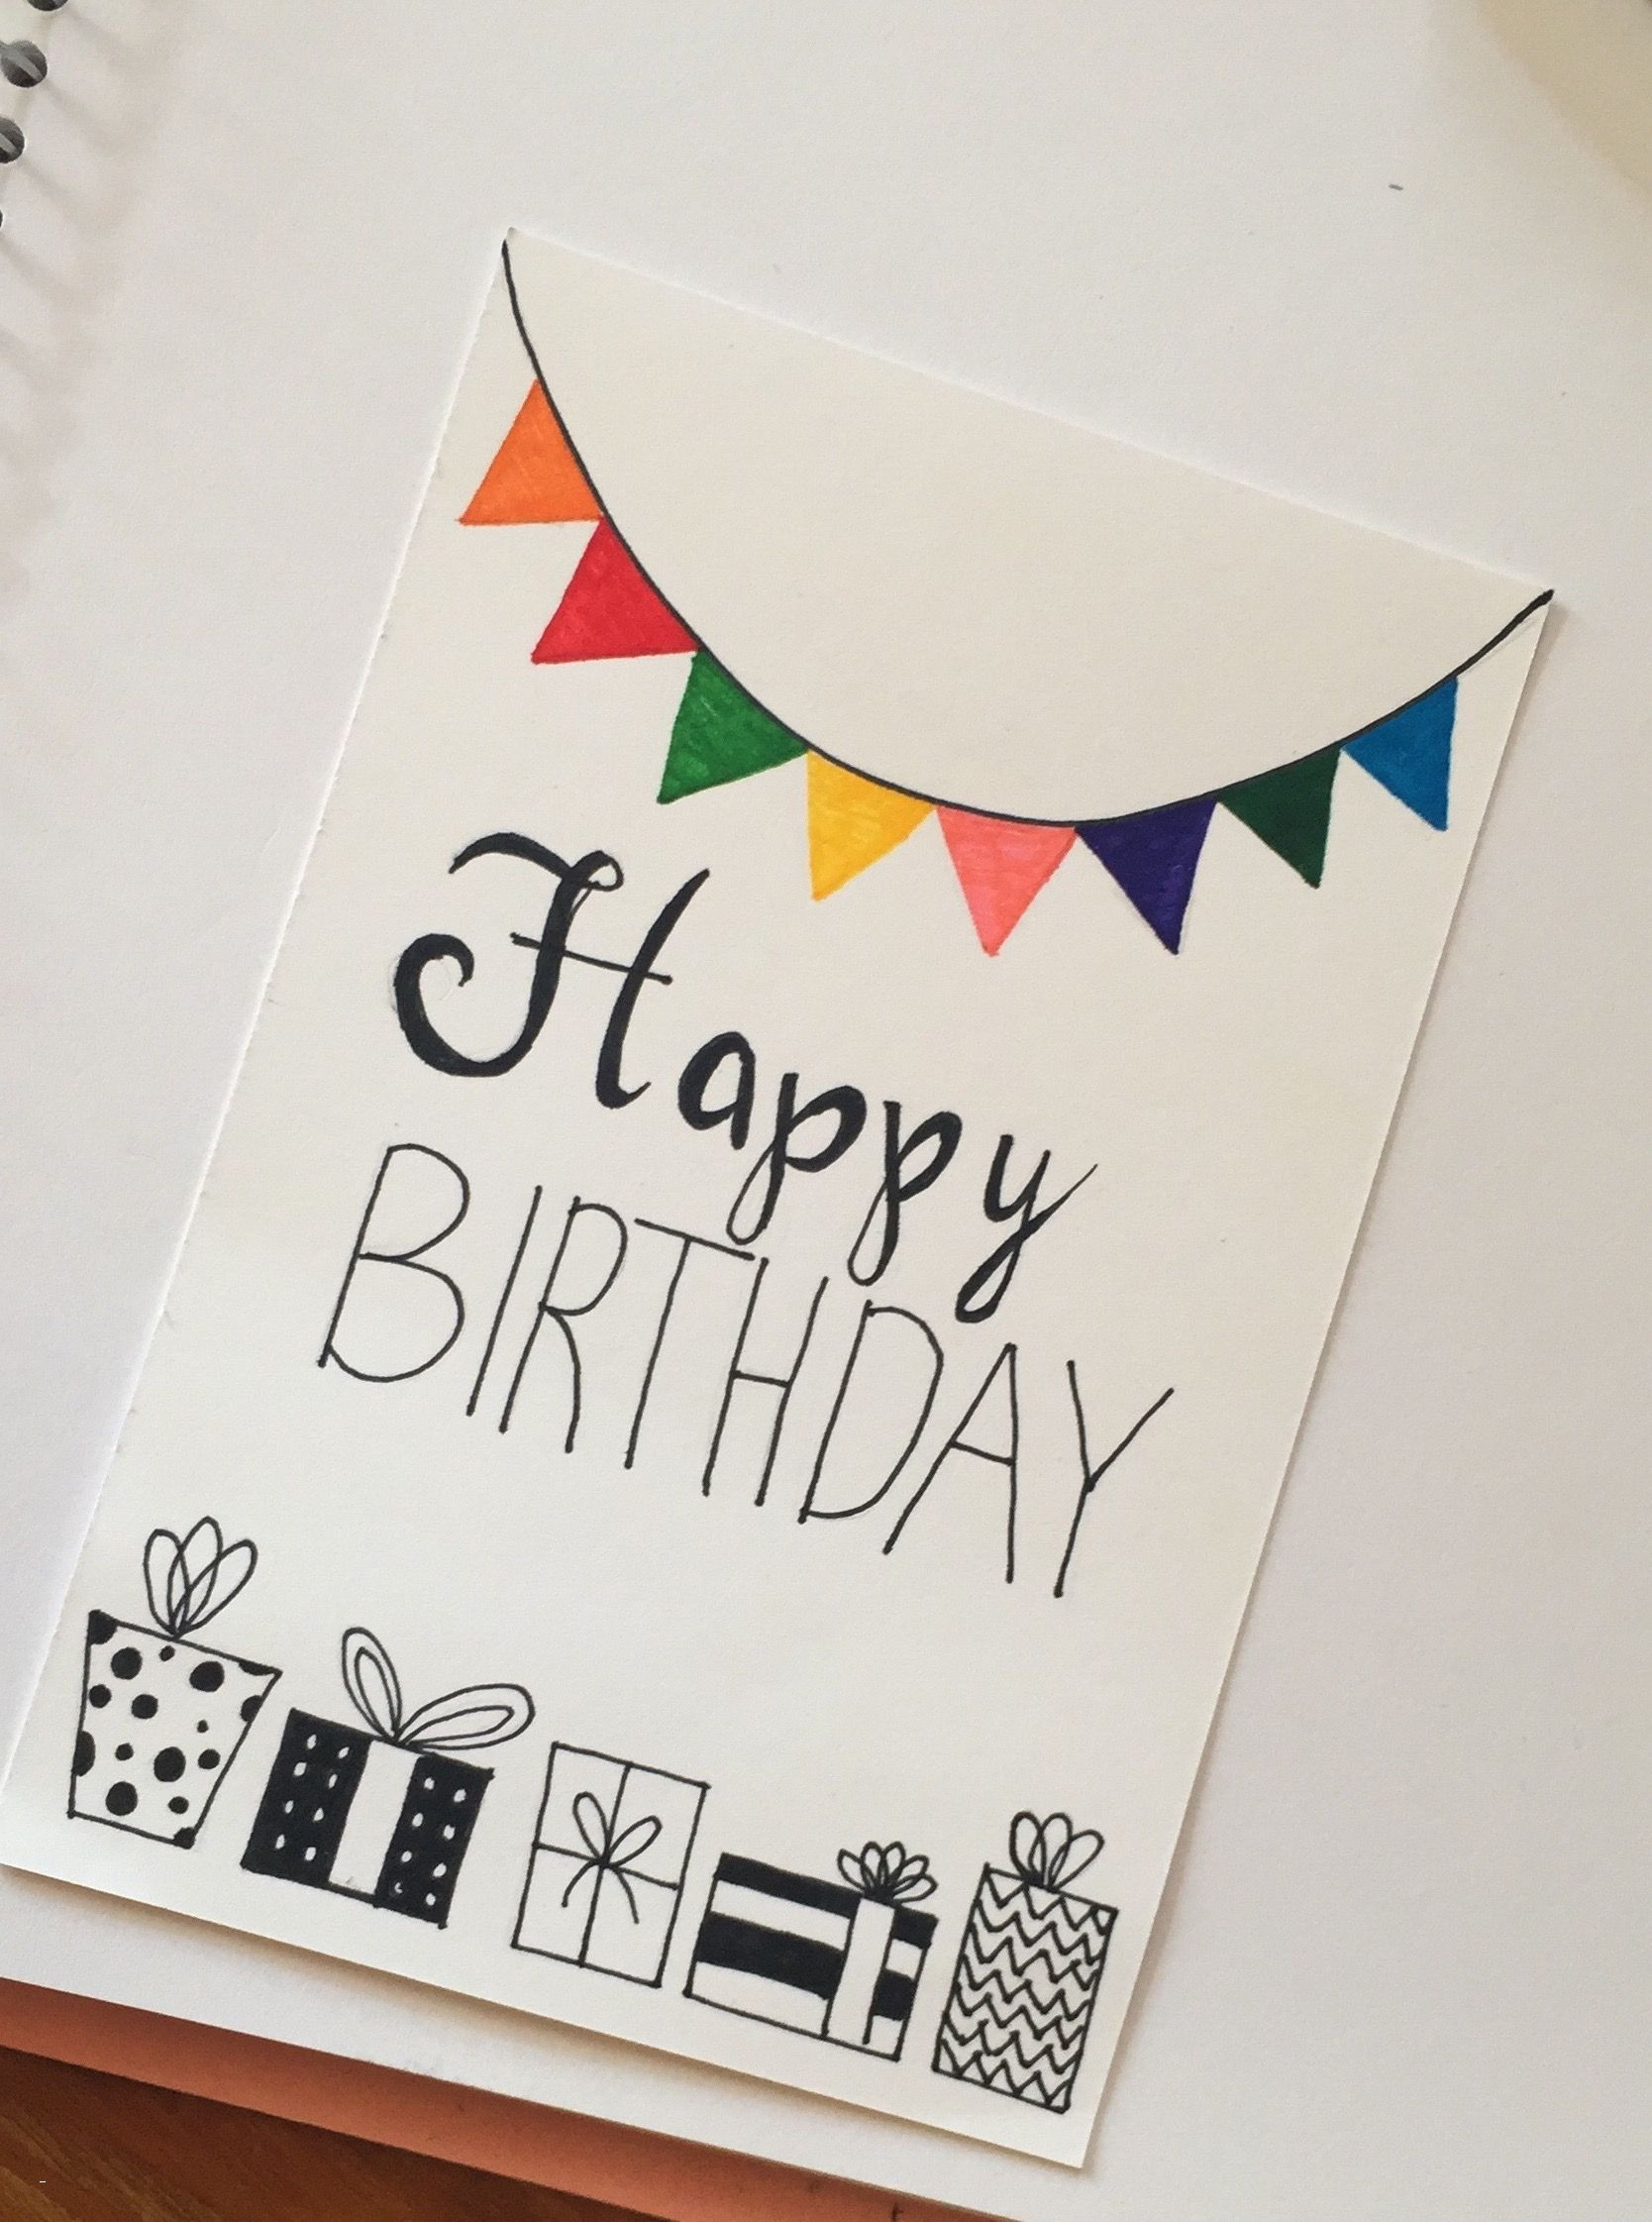 Card Ideas For Dads Birthday Easy Dad Birthday Card Ideas For From Child Wording Text A S